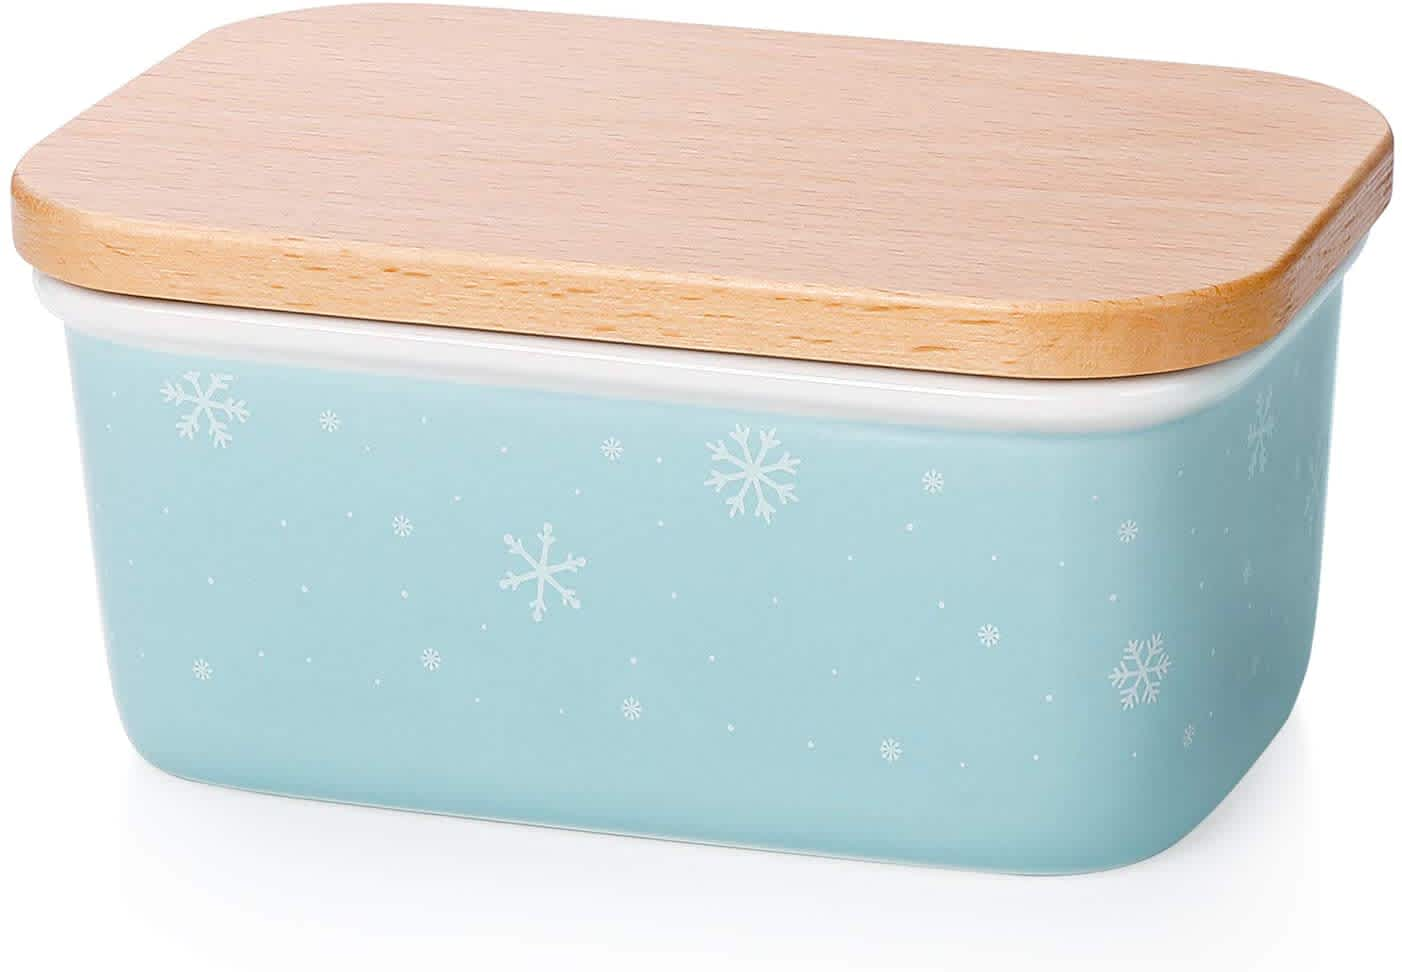 The Inspired Home Sweese Large Butter Dish